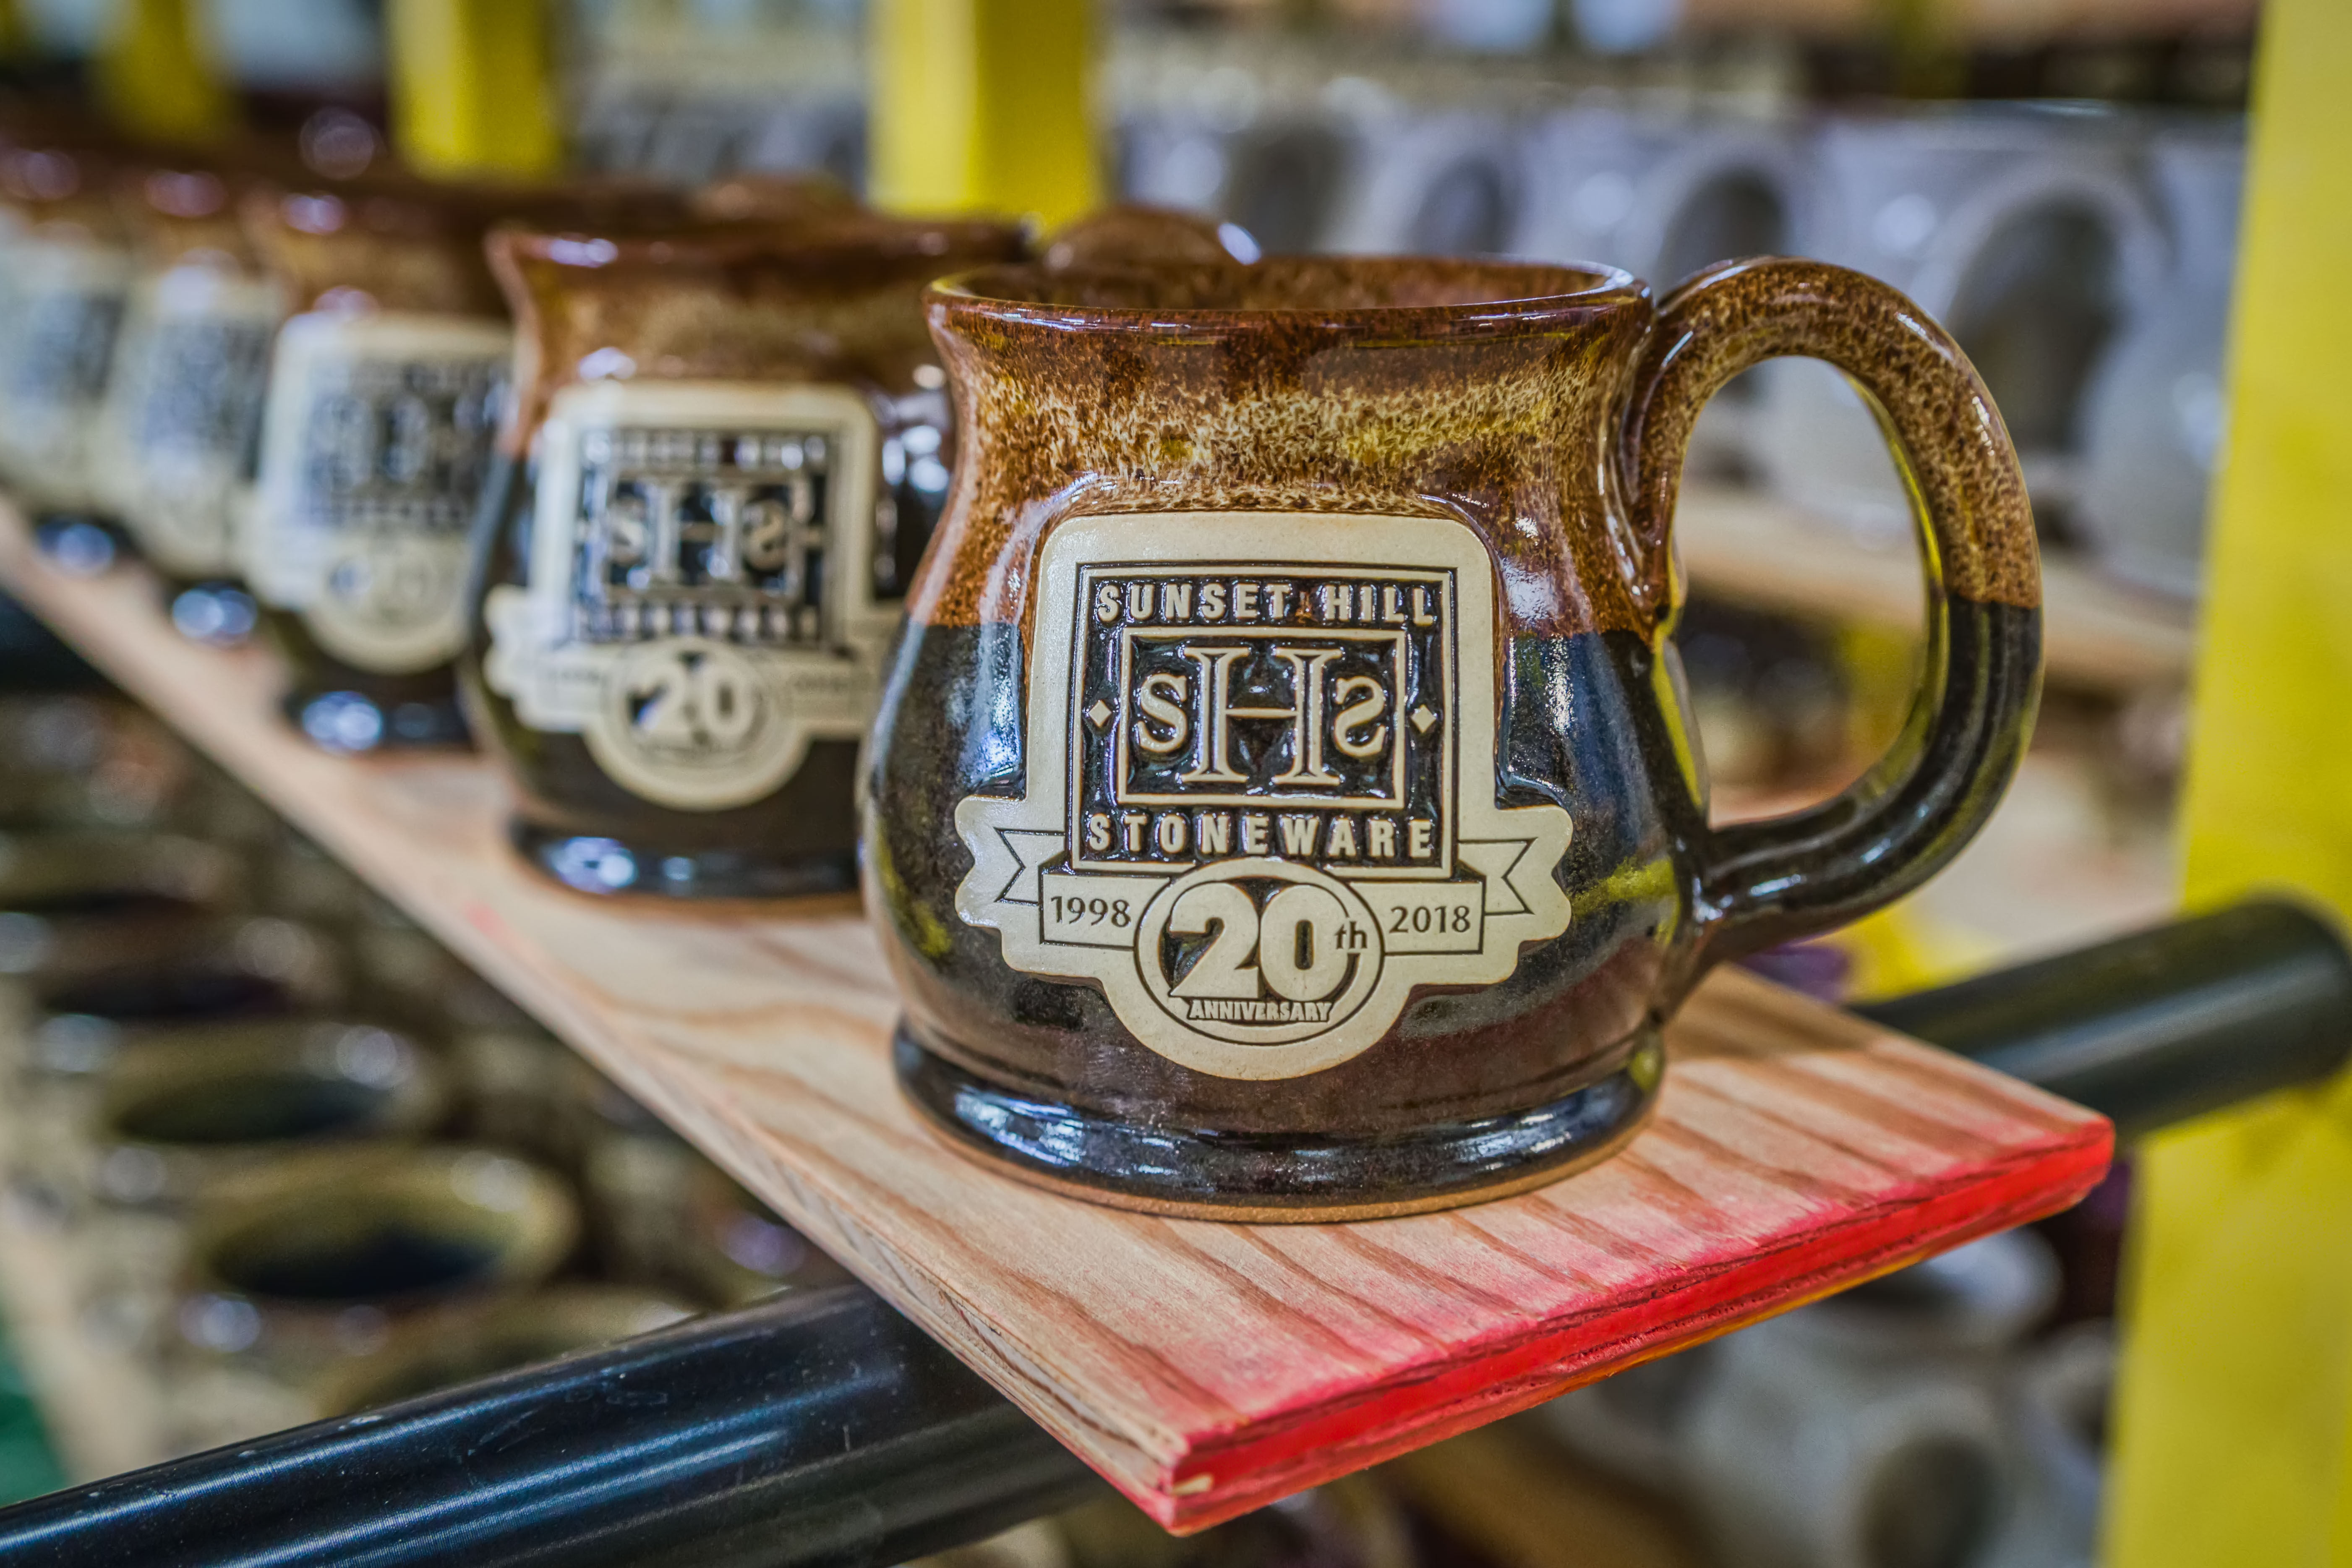 Introducing the Sunset Hill Stoneware Online Store